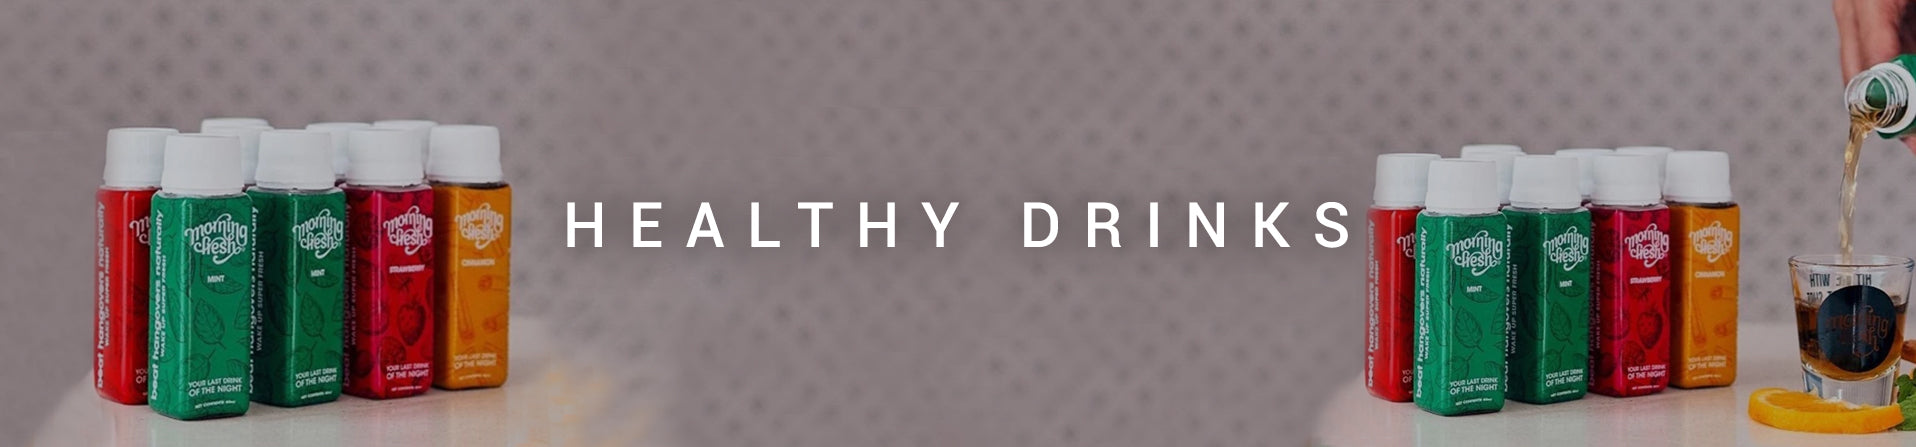 - Healthy Drinks -